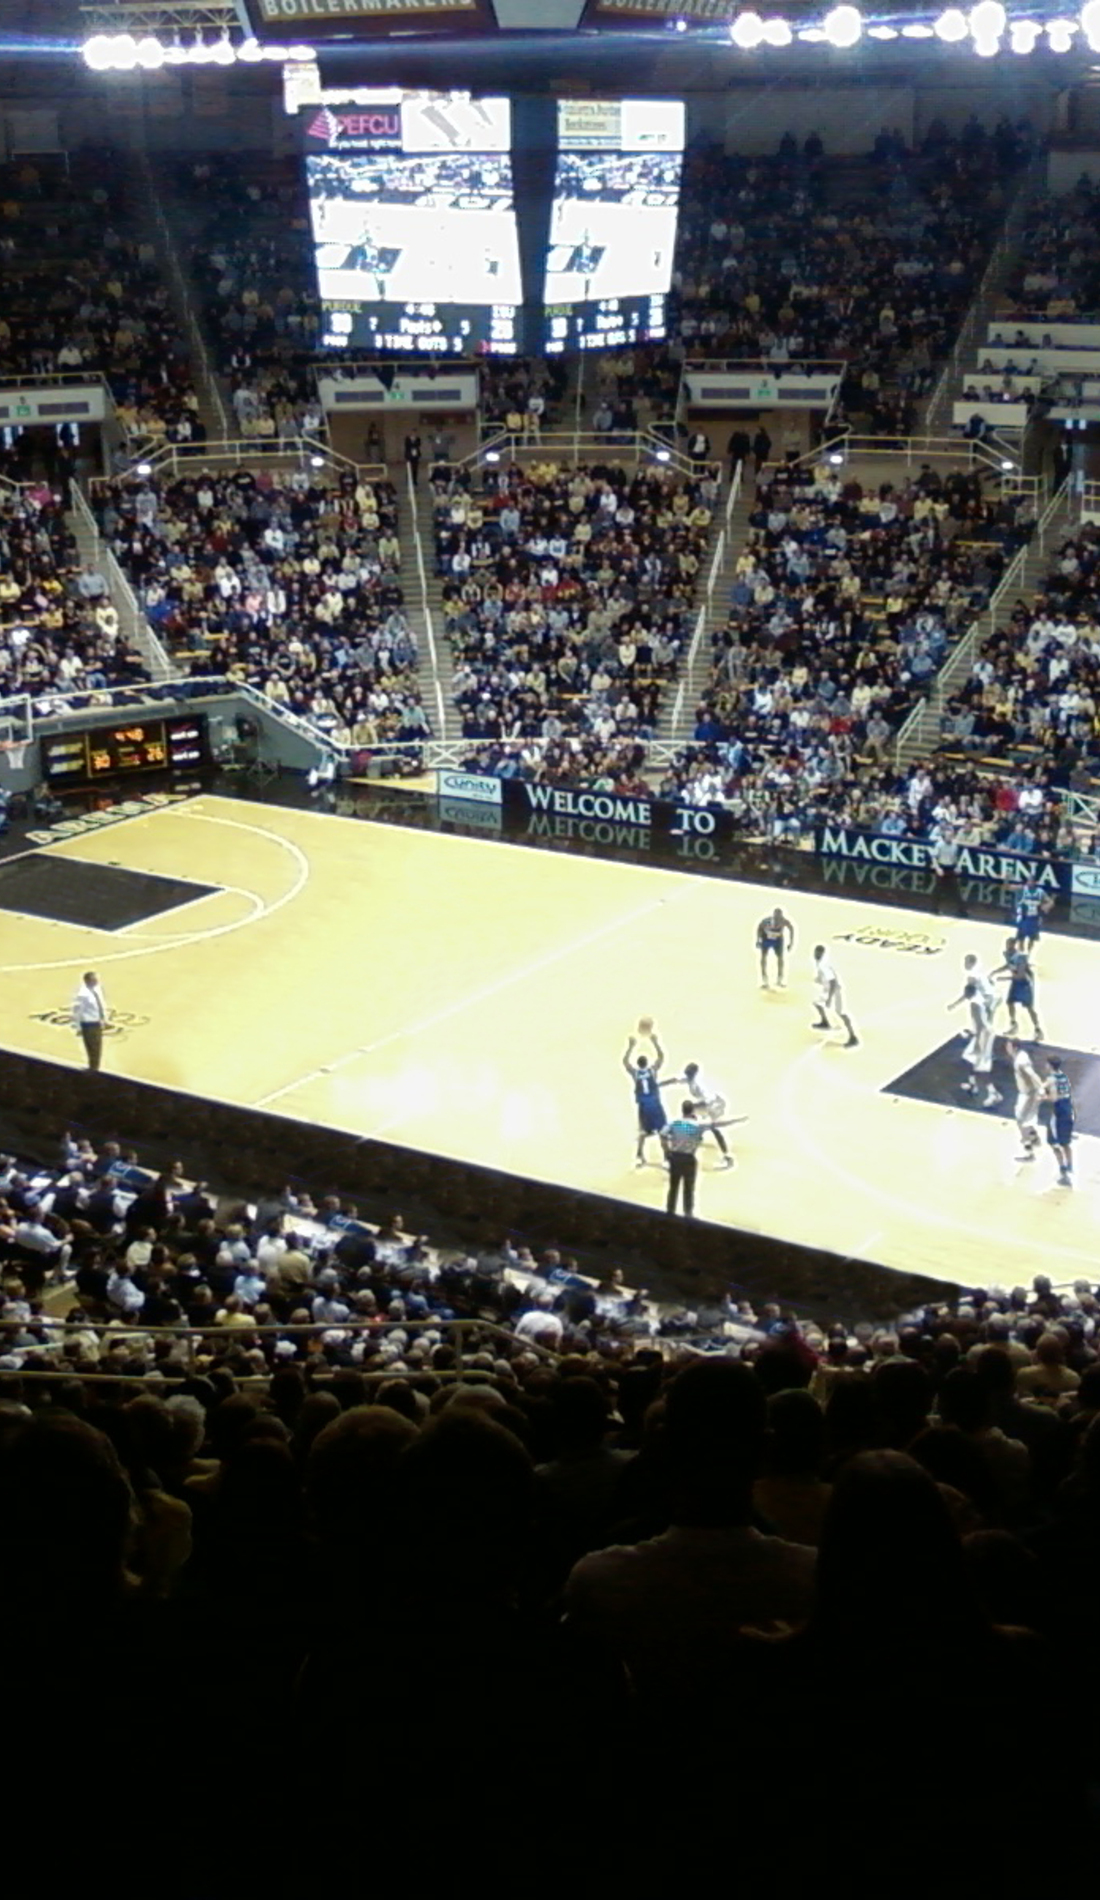 A Purdue Boilermakers Basketball live event